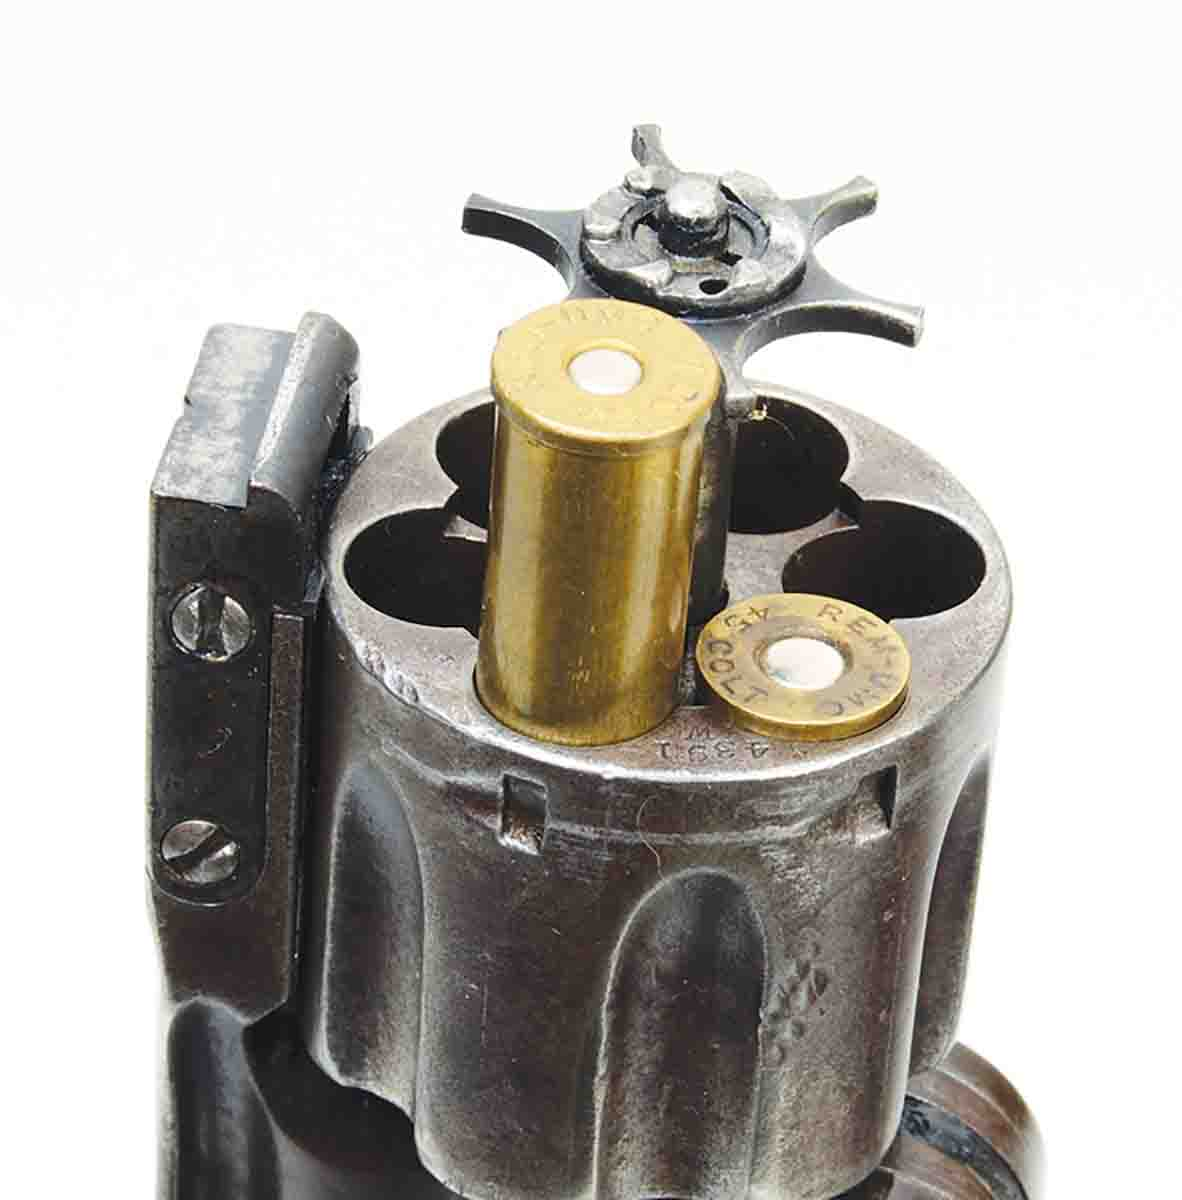 The short .45 Colt rounds with .502-inch rim diameters will not function properly in the star type extractors of Smith & Wesson Model No. 3s.